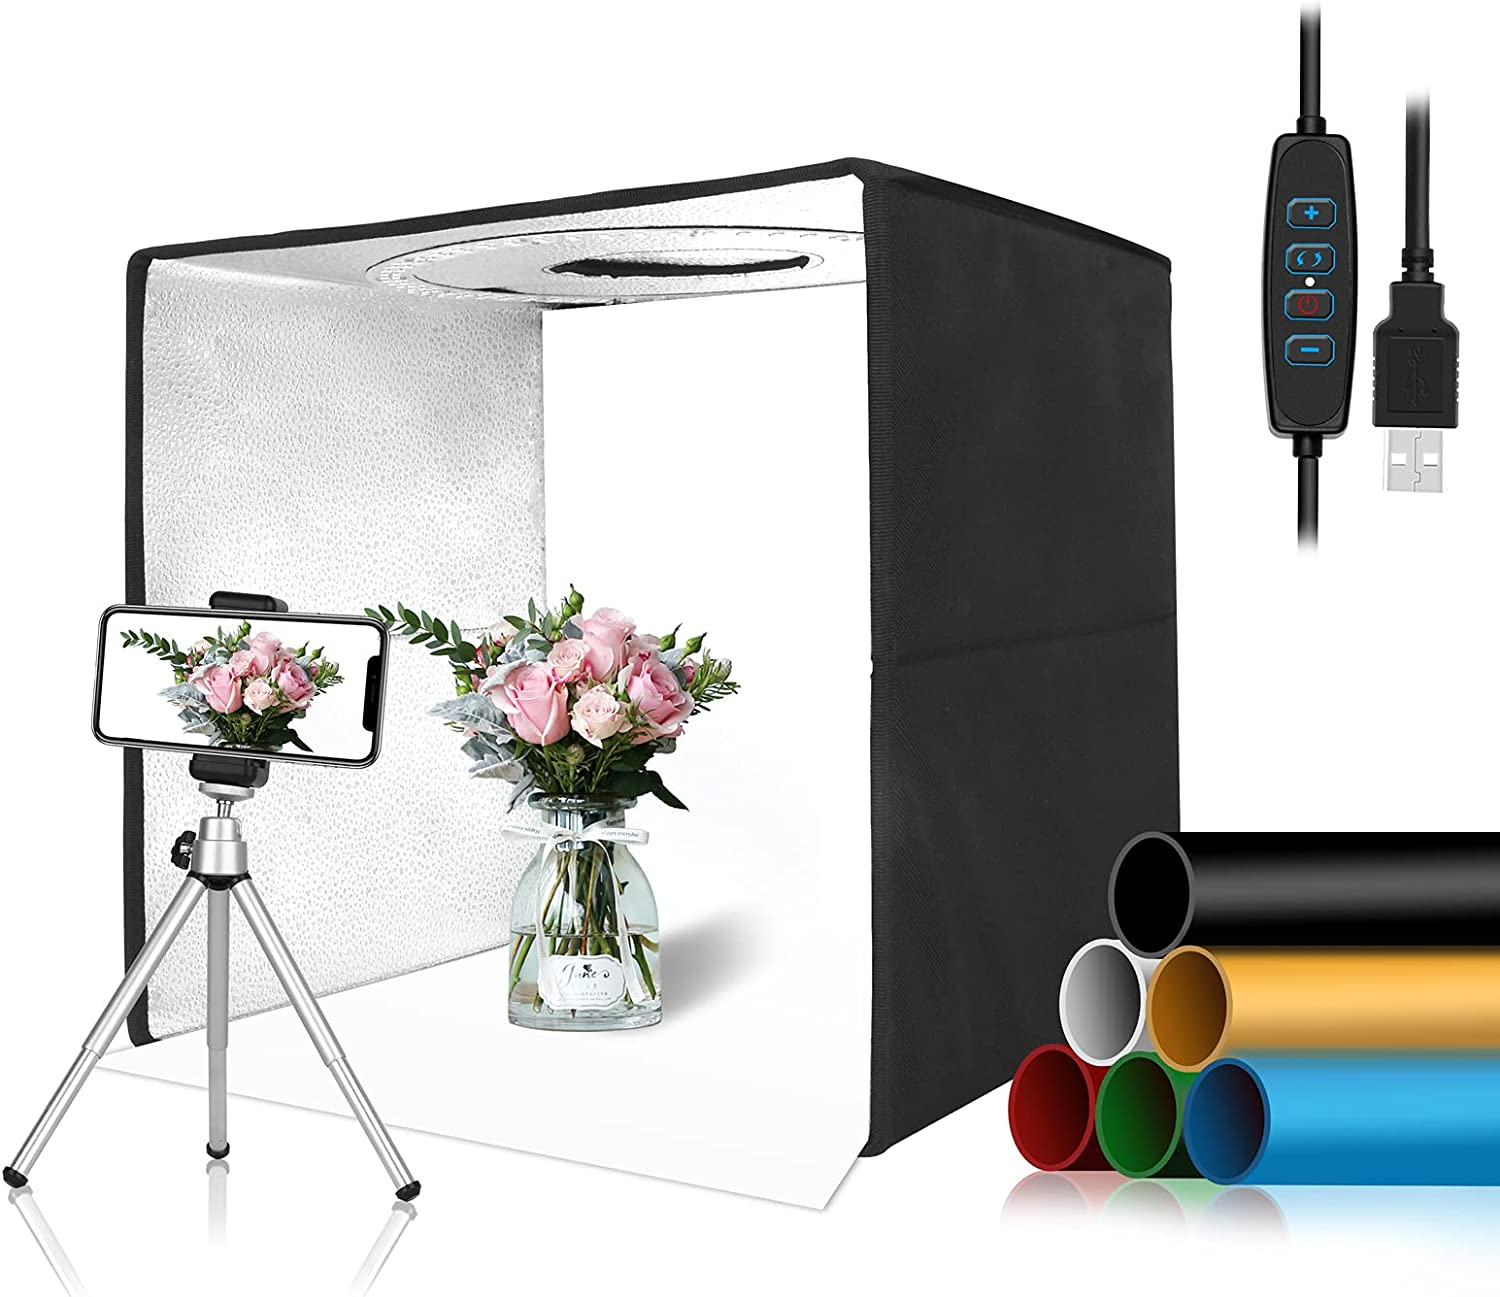 Emart Photography National products Studio Light Box 12